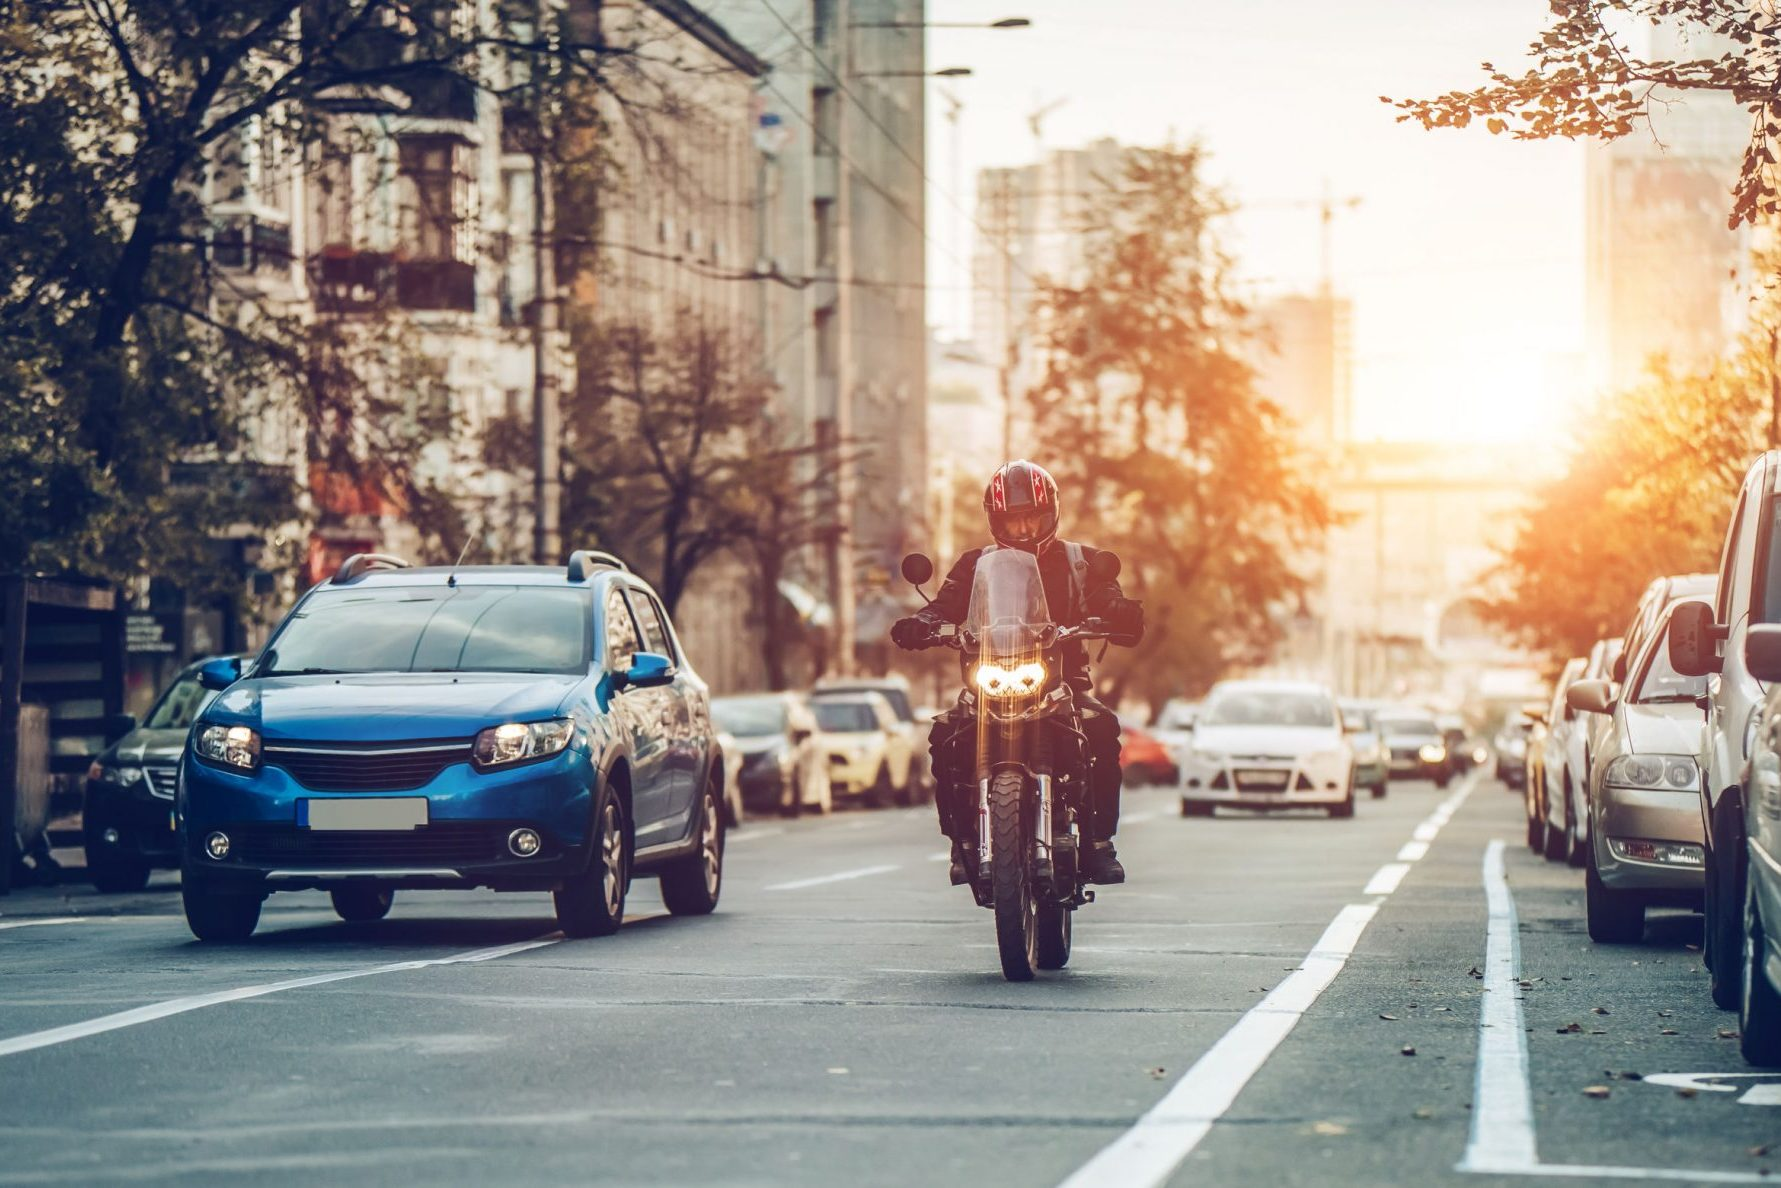 Motorcycle and cars on street